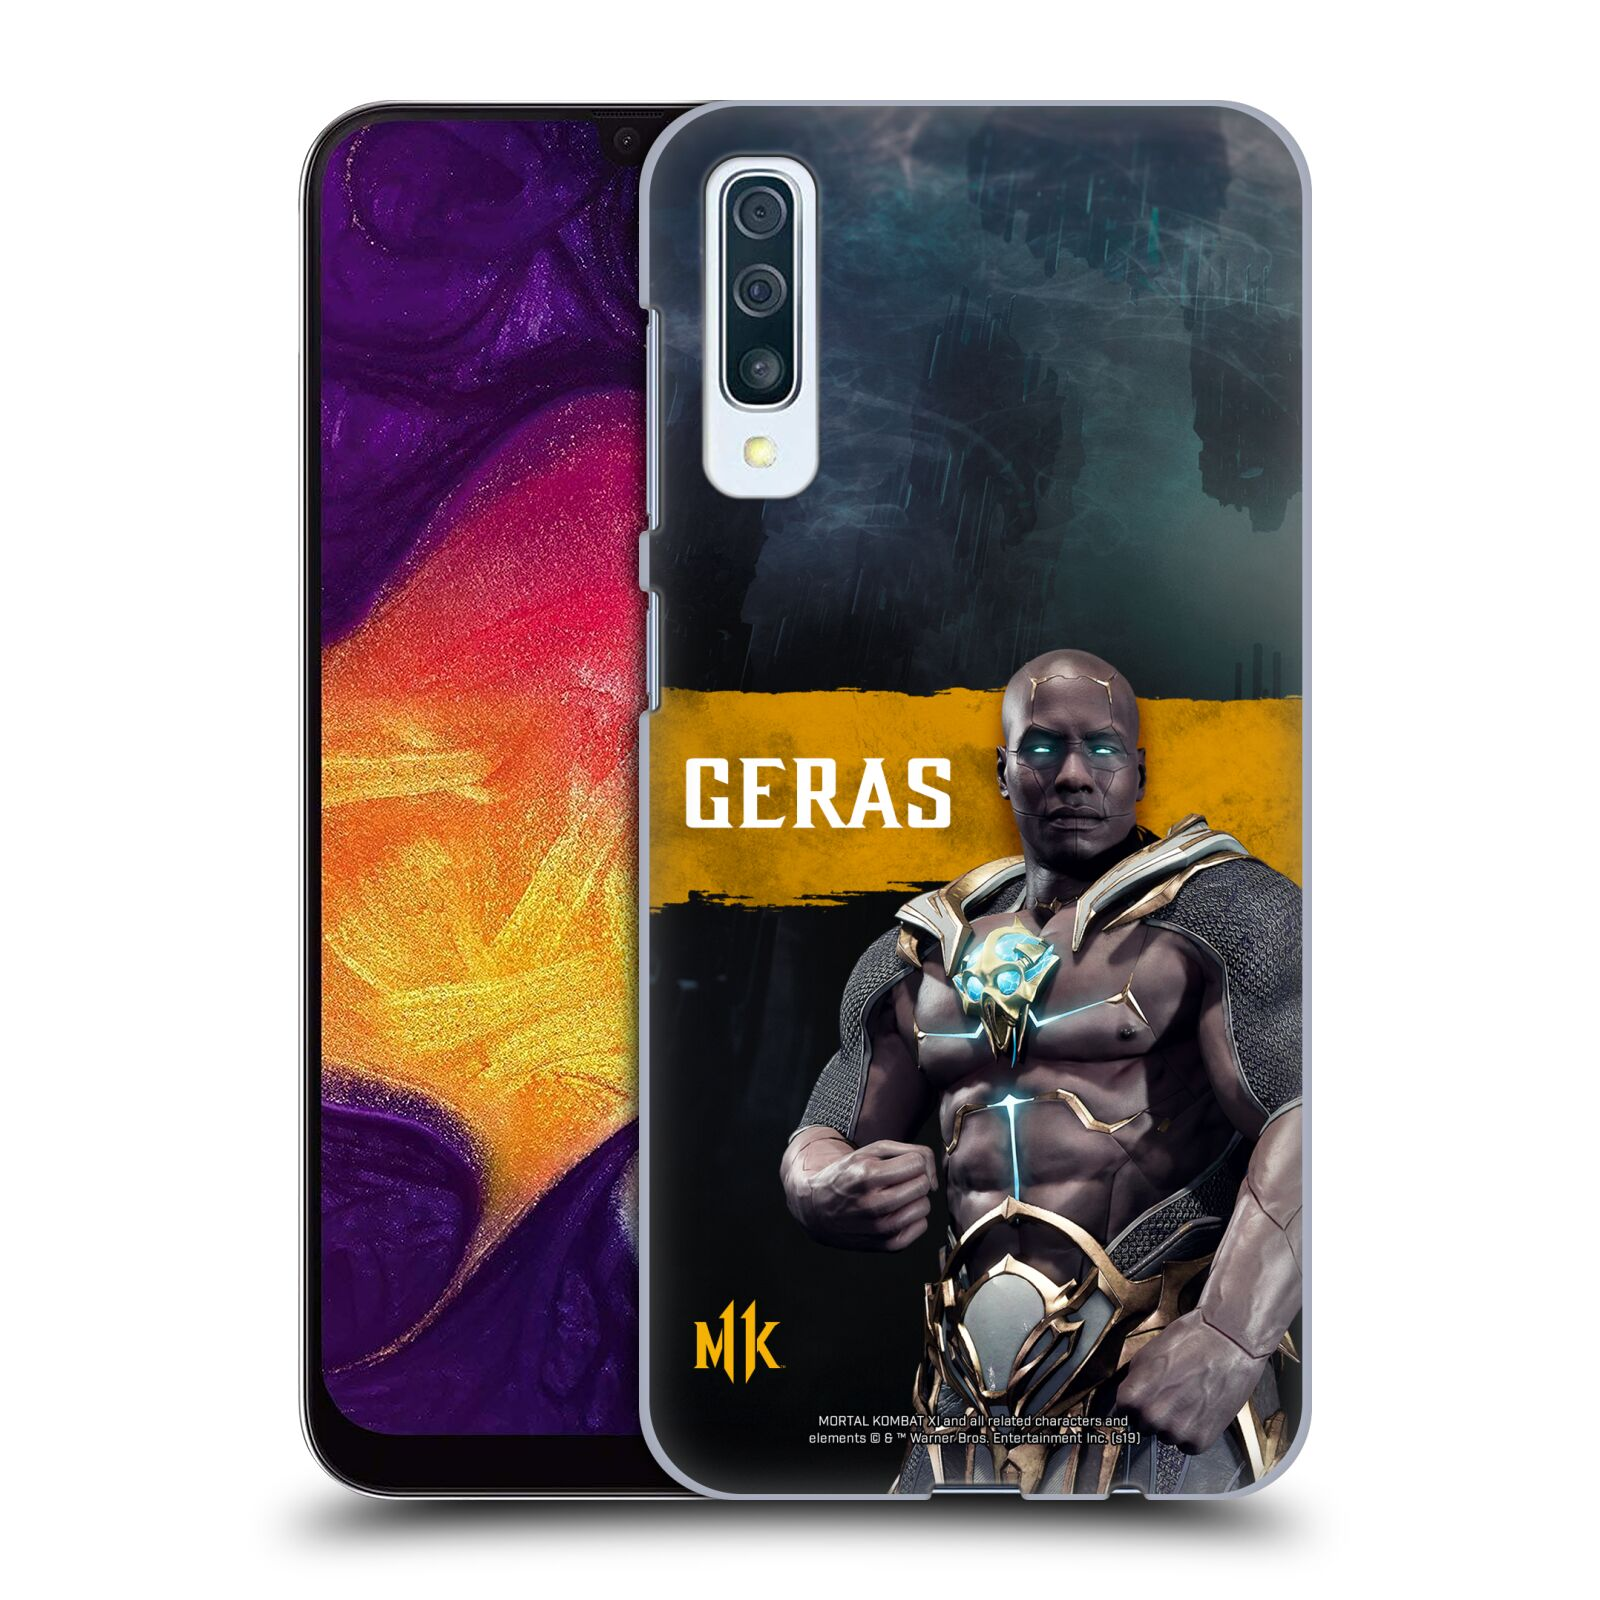 Official Mortal Kombat 11 Characters Geras Case for Samsung Galaxy A50s (2019)